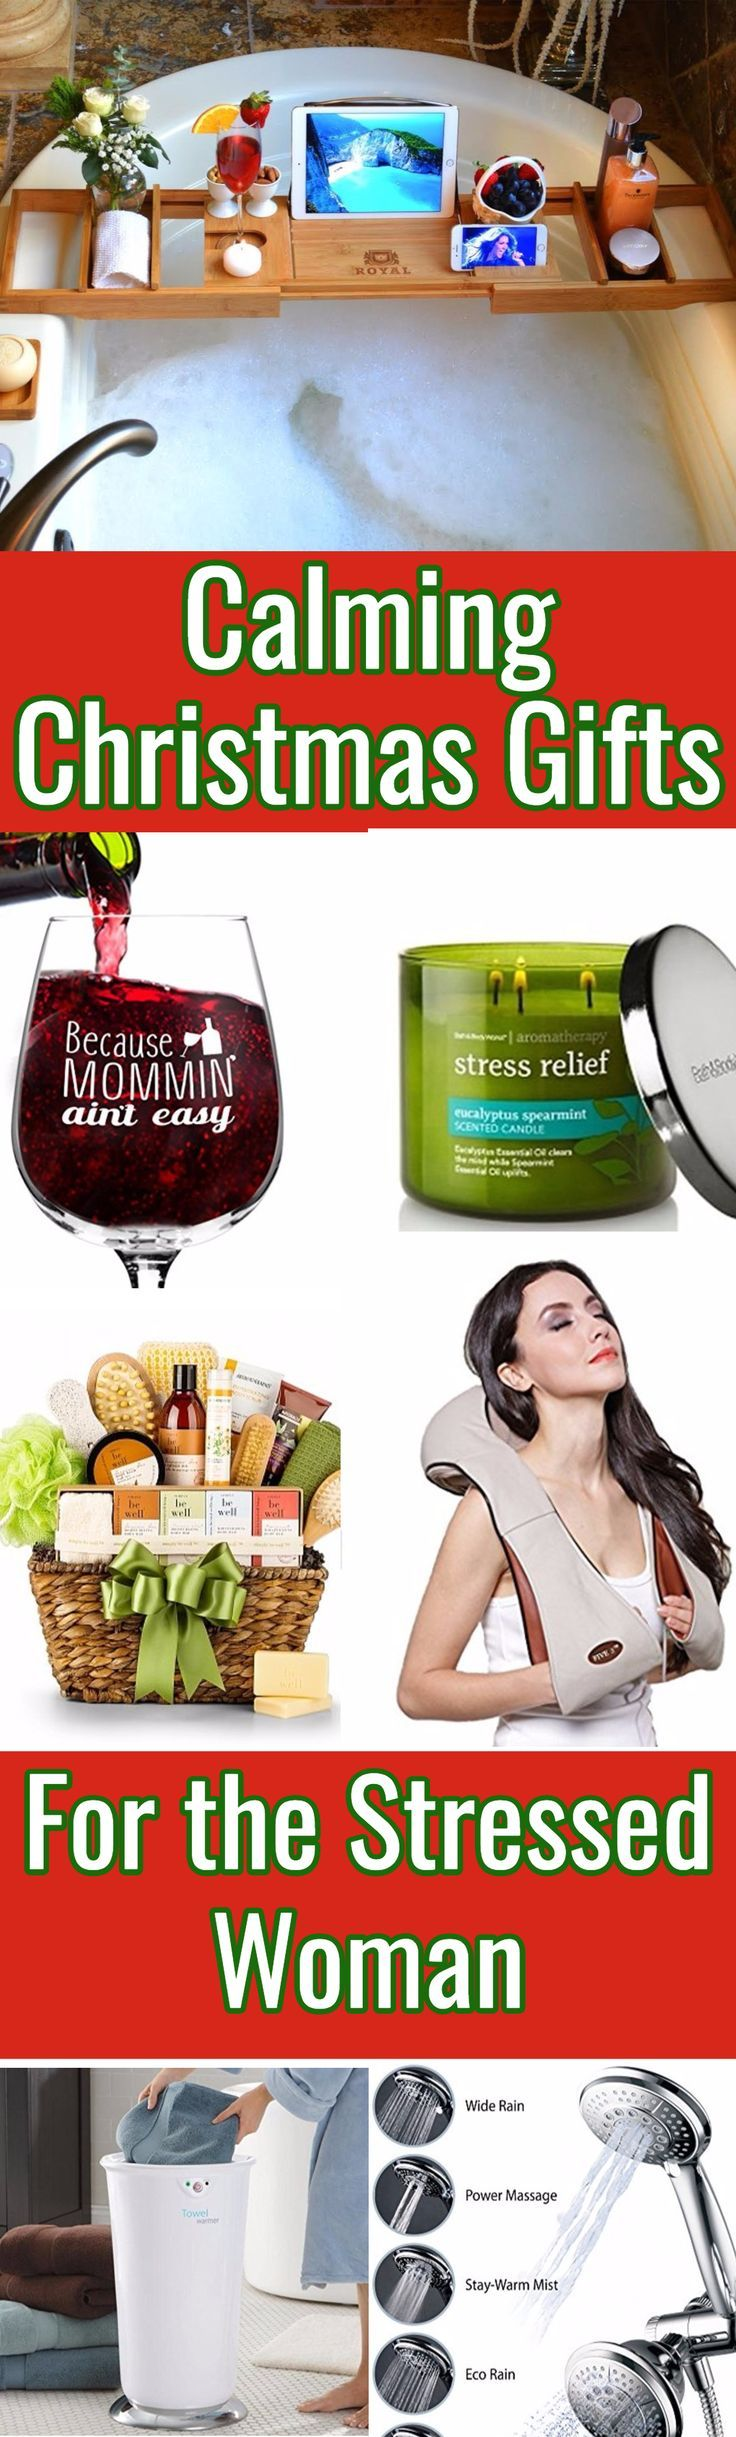 Calming Christmas gifts for the stressed woman - looking for Christmas gift ideas for the woman who is constantly stressed out?  Soothe her frazzled nerves with one of these pampering Christmas presents!  Click to see over 50 fabulous gift ideas.  #GiftForHer  #christmasgiftguide  #momgift